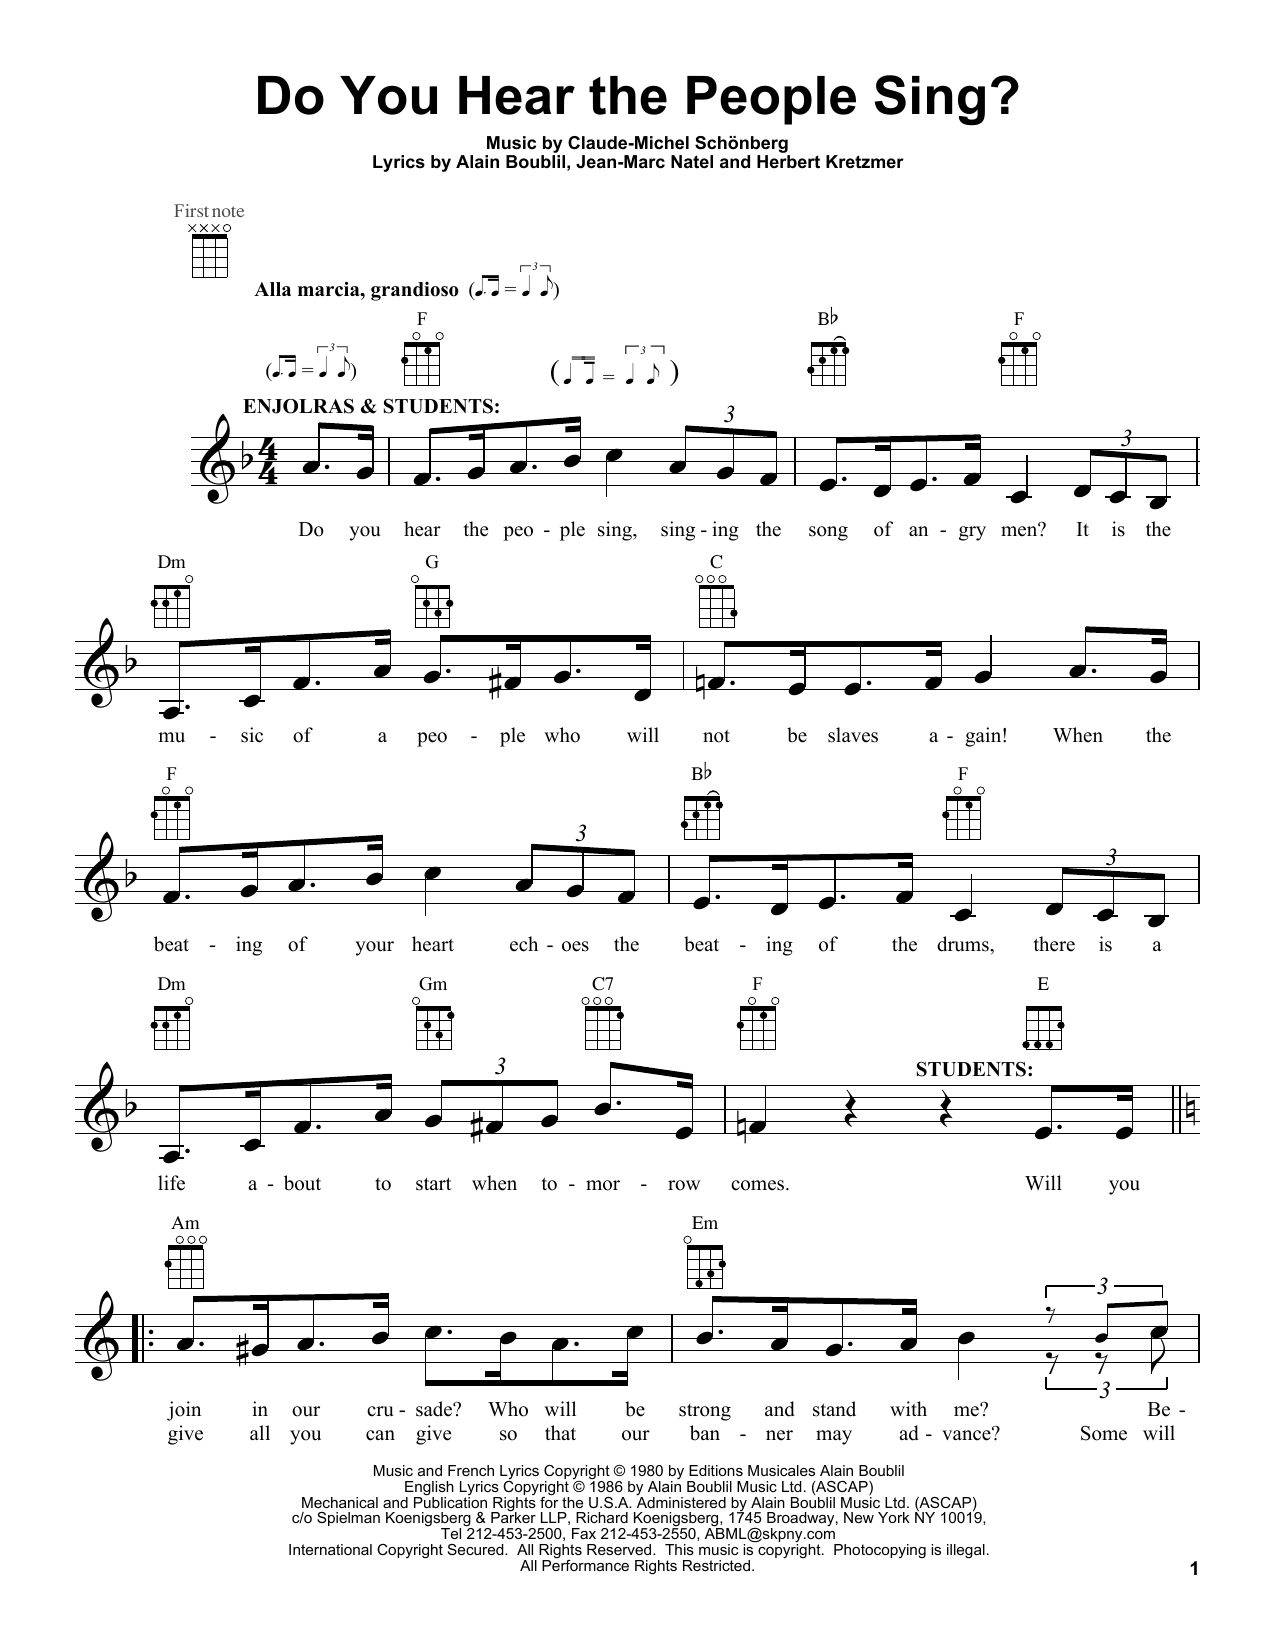 Do You Hear The People Sing? sheet music for ukulele by Claude-Michel Schonberg